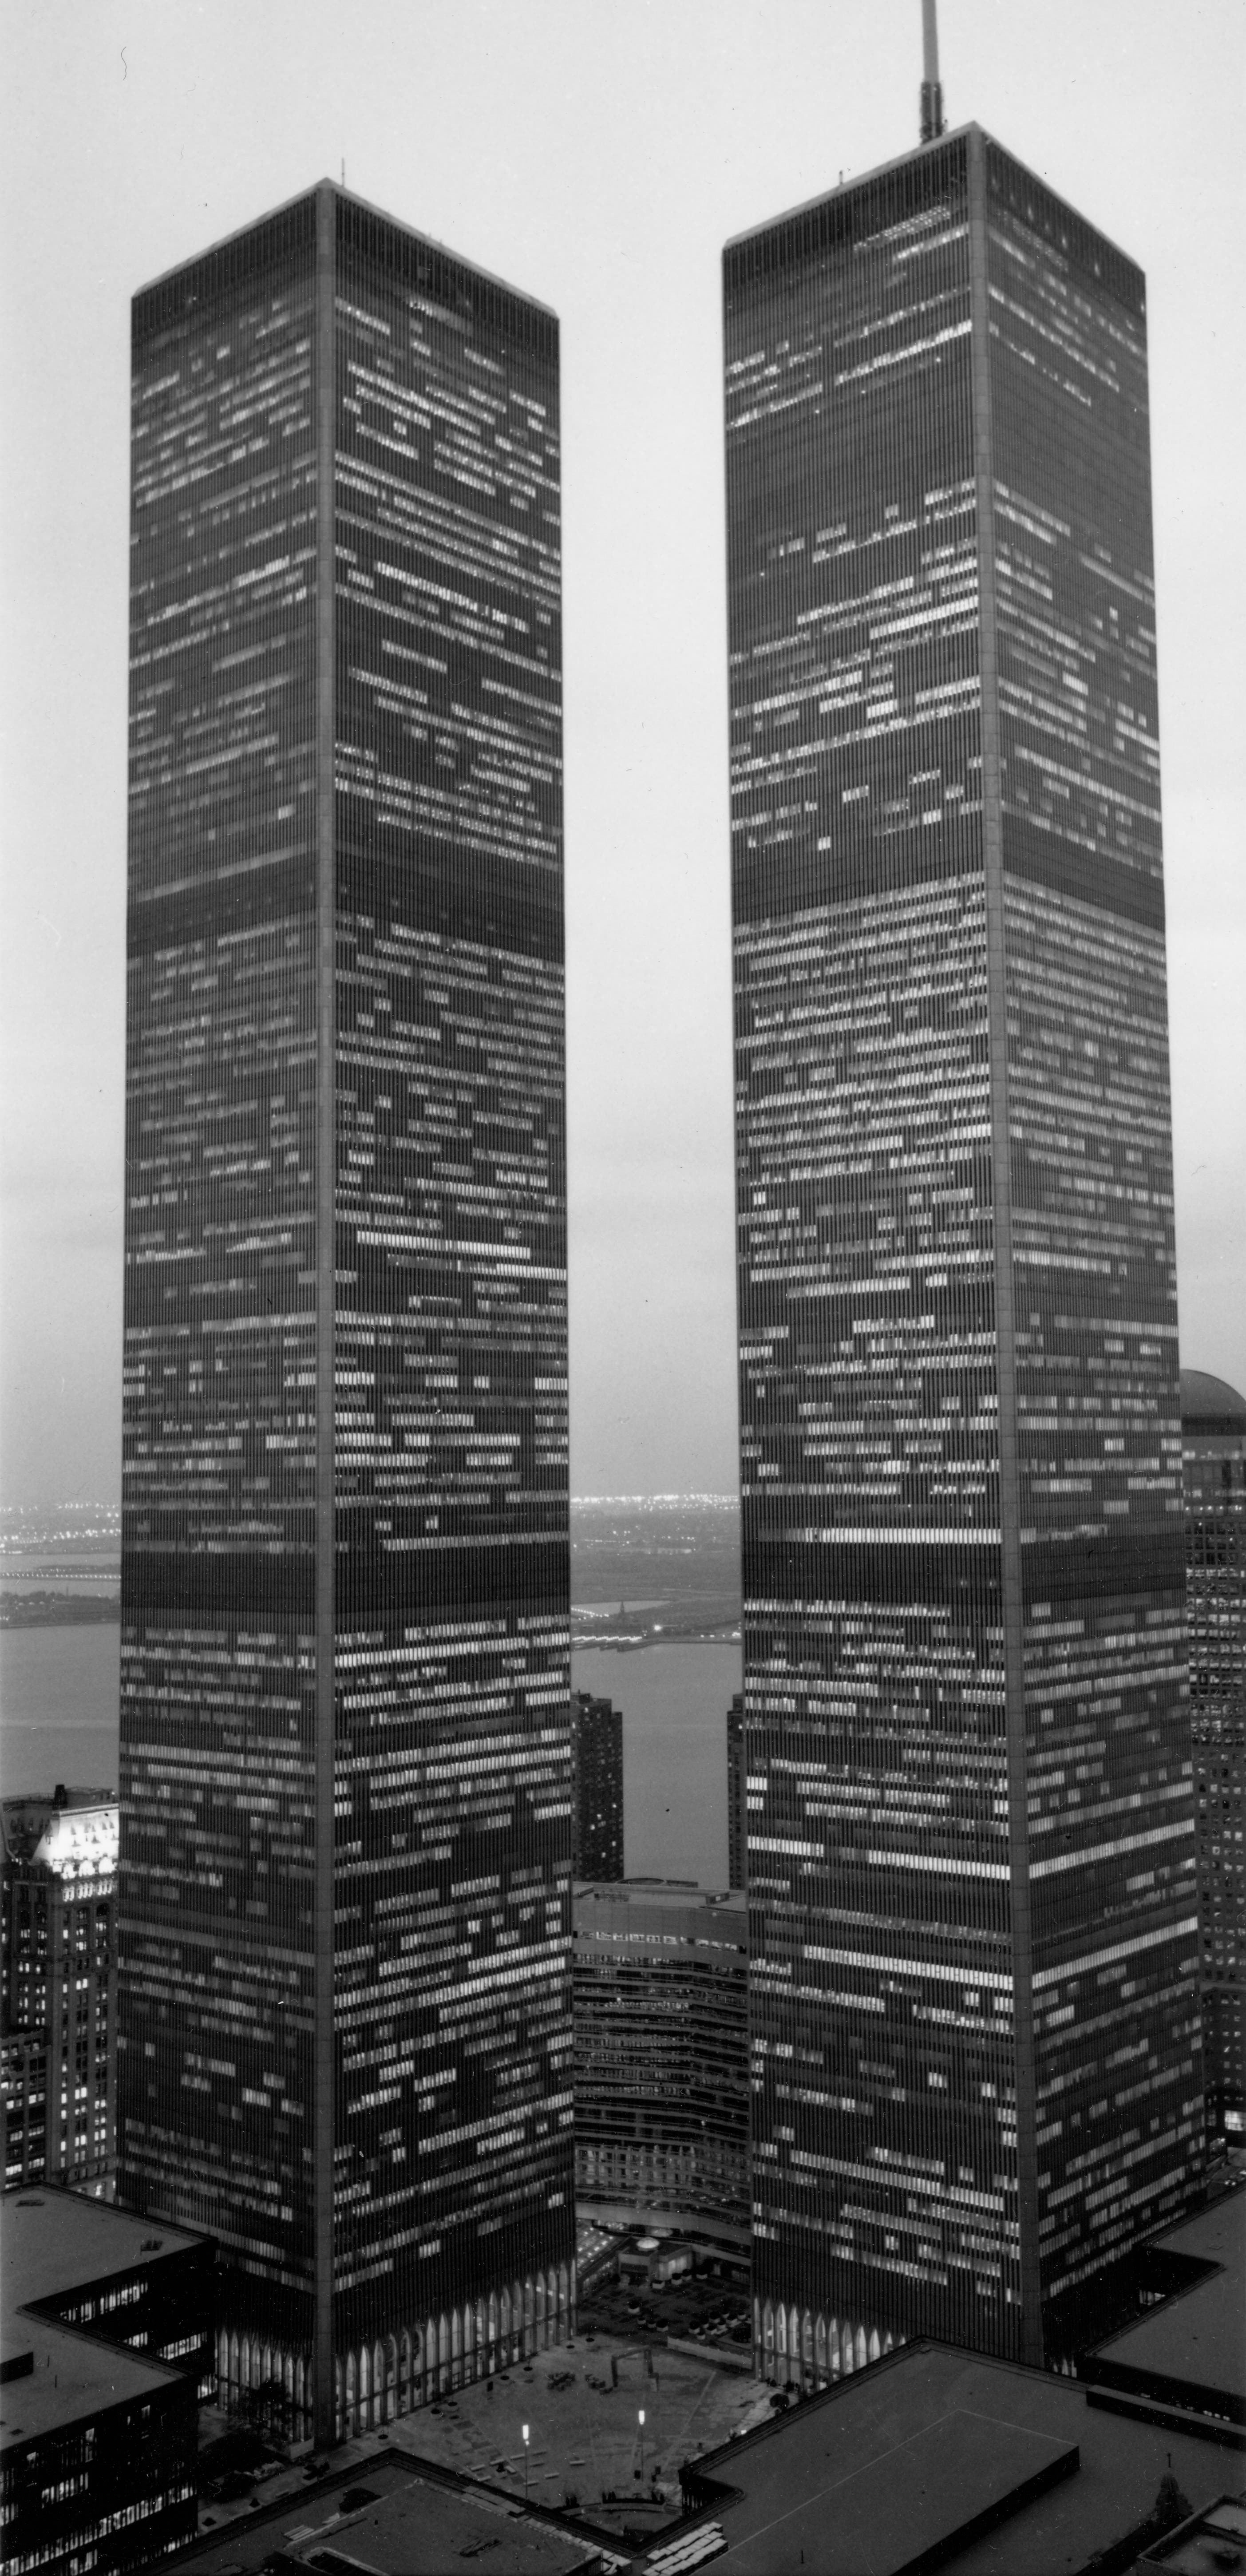 George Forss Made Magical Photos of the Towers Before 9/11